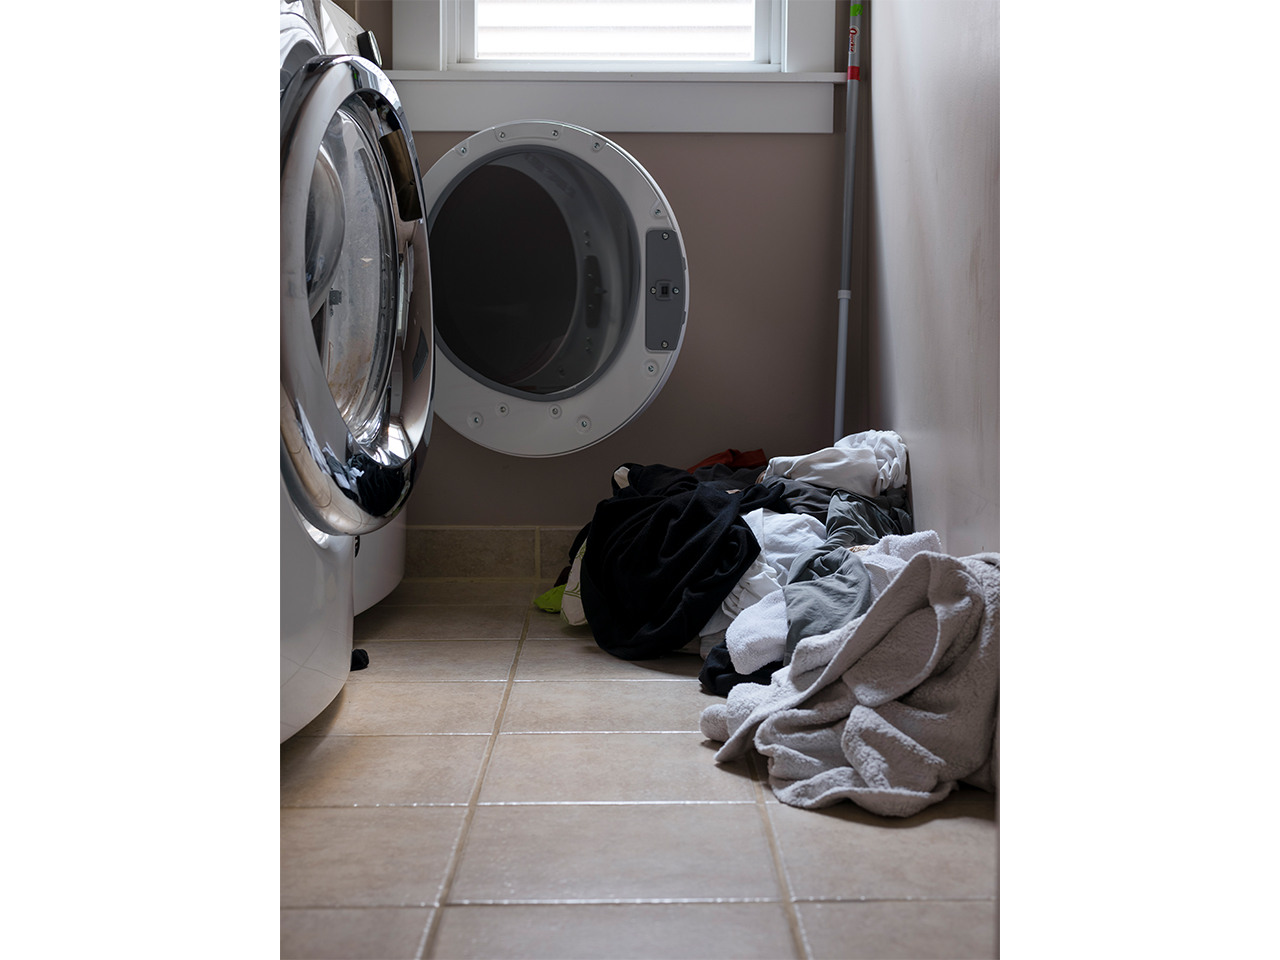 a laundry room with a washer open, clothes in a pile on the floor